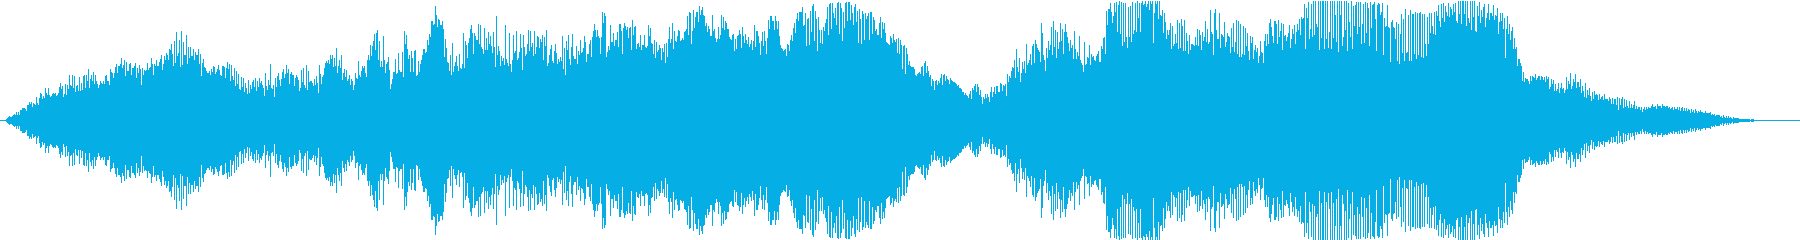 Magnificently finished sound logo with brass instruments's reproduced waveform